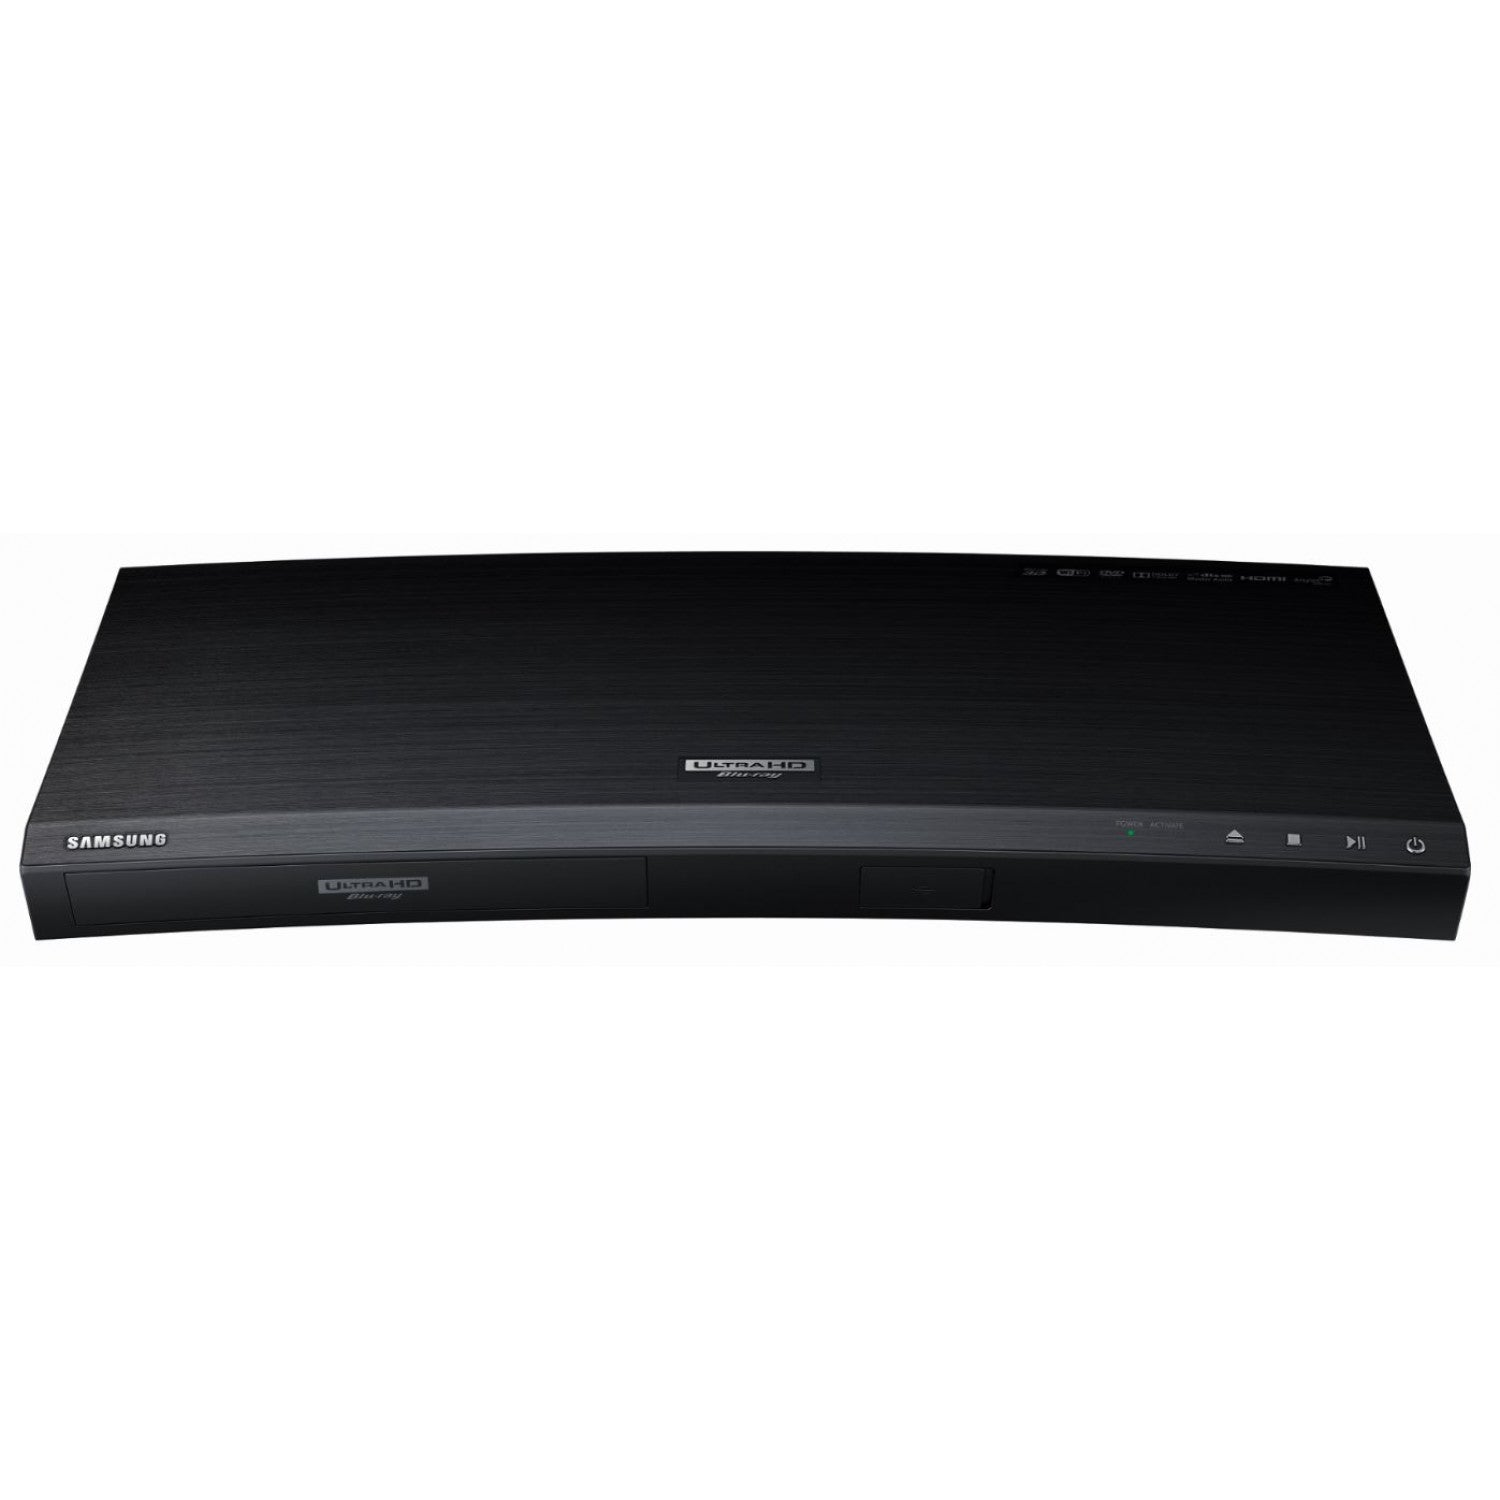 samsung blu-ray player with built-in wifi user manual bd5700